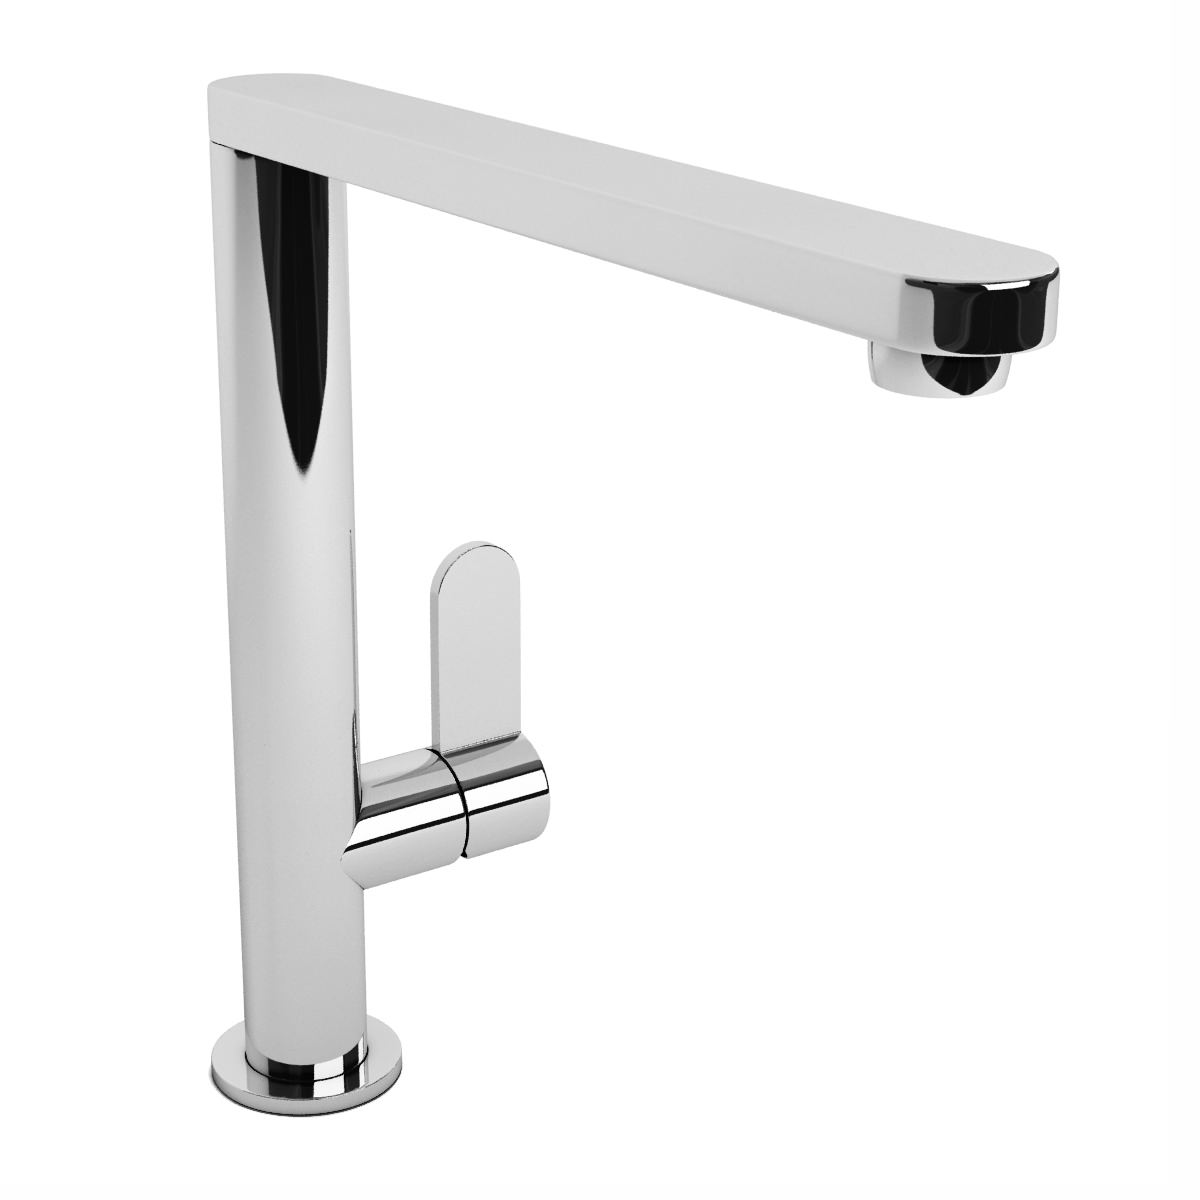 abode linear chrome single lever kitchen mixer tap. Black Bedroom Furniture Sets. Home Design Ideas